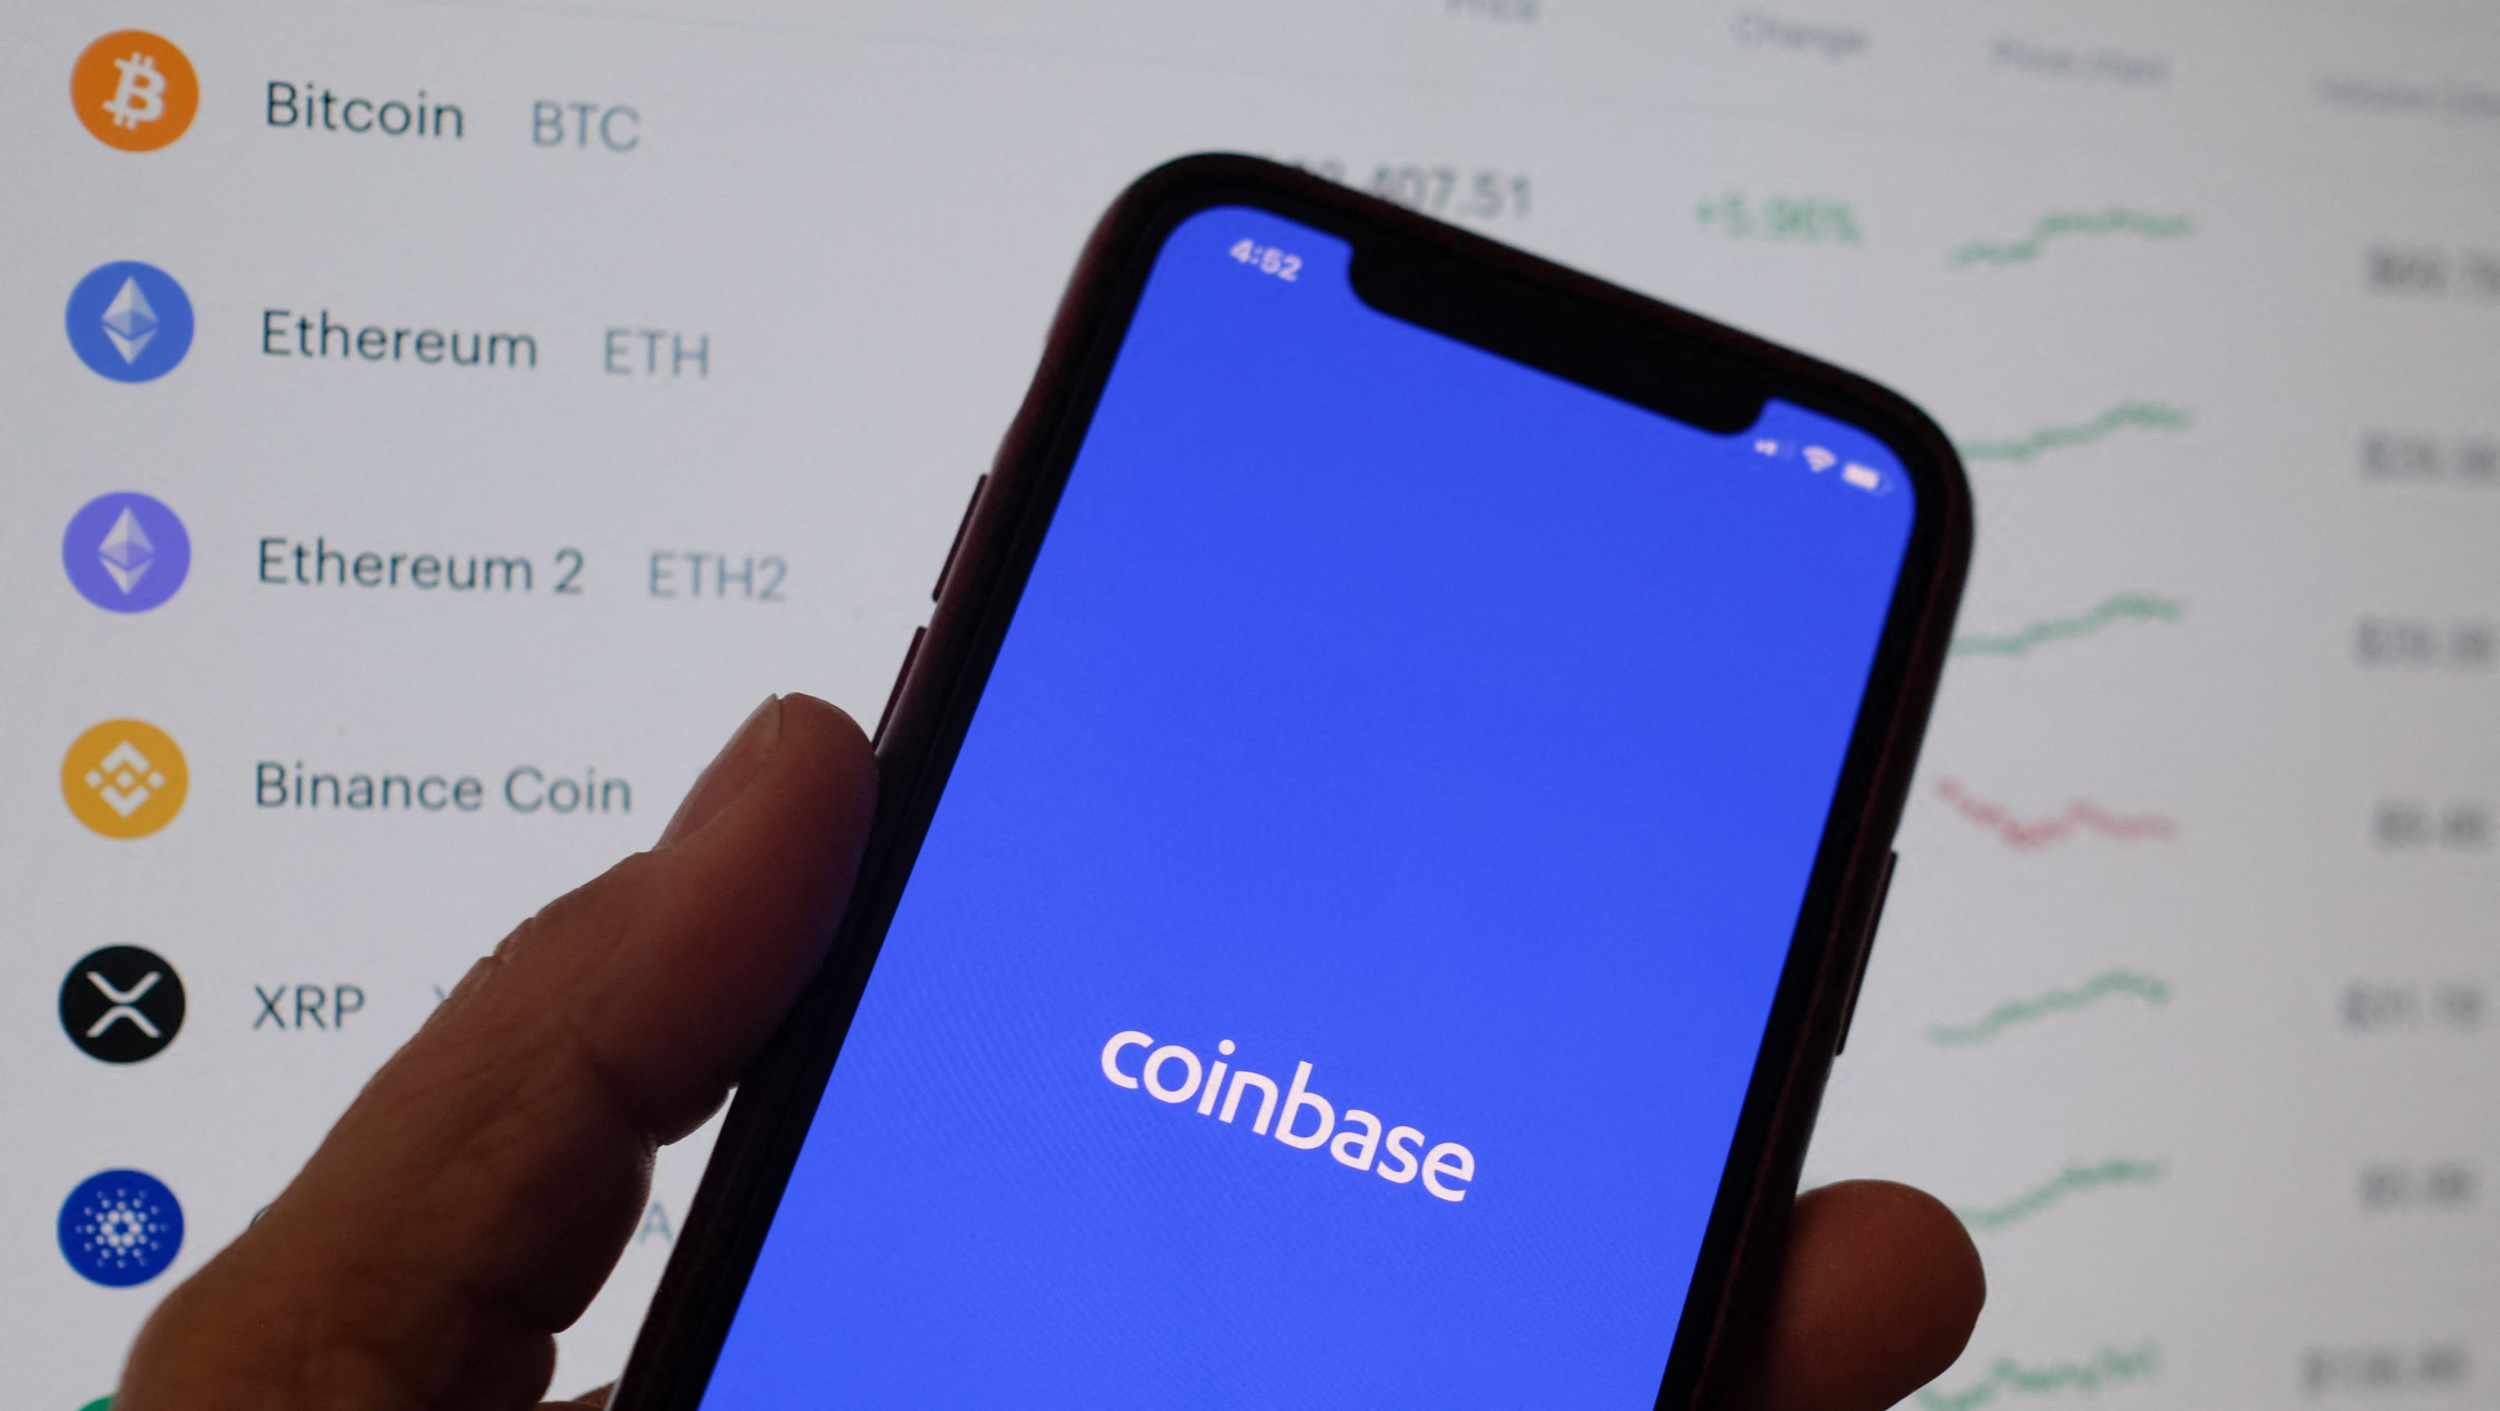 What To Know About Crypto Exchange Coinbase Going Public